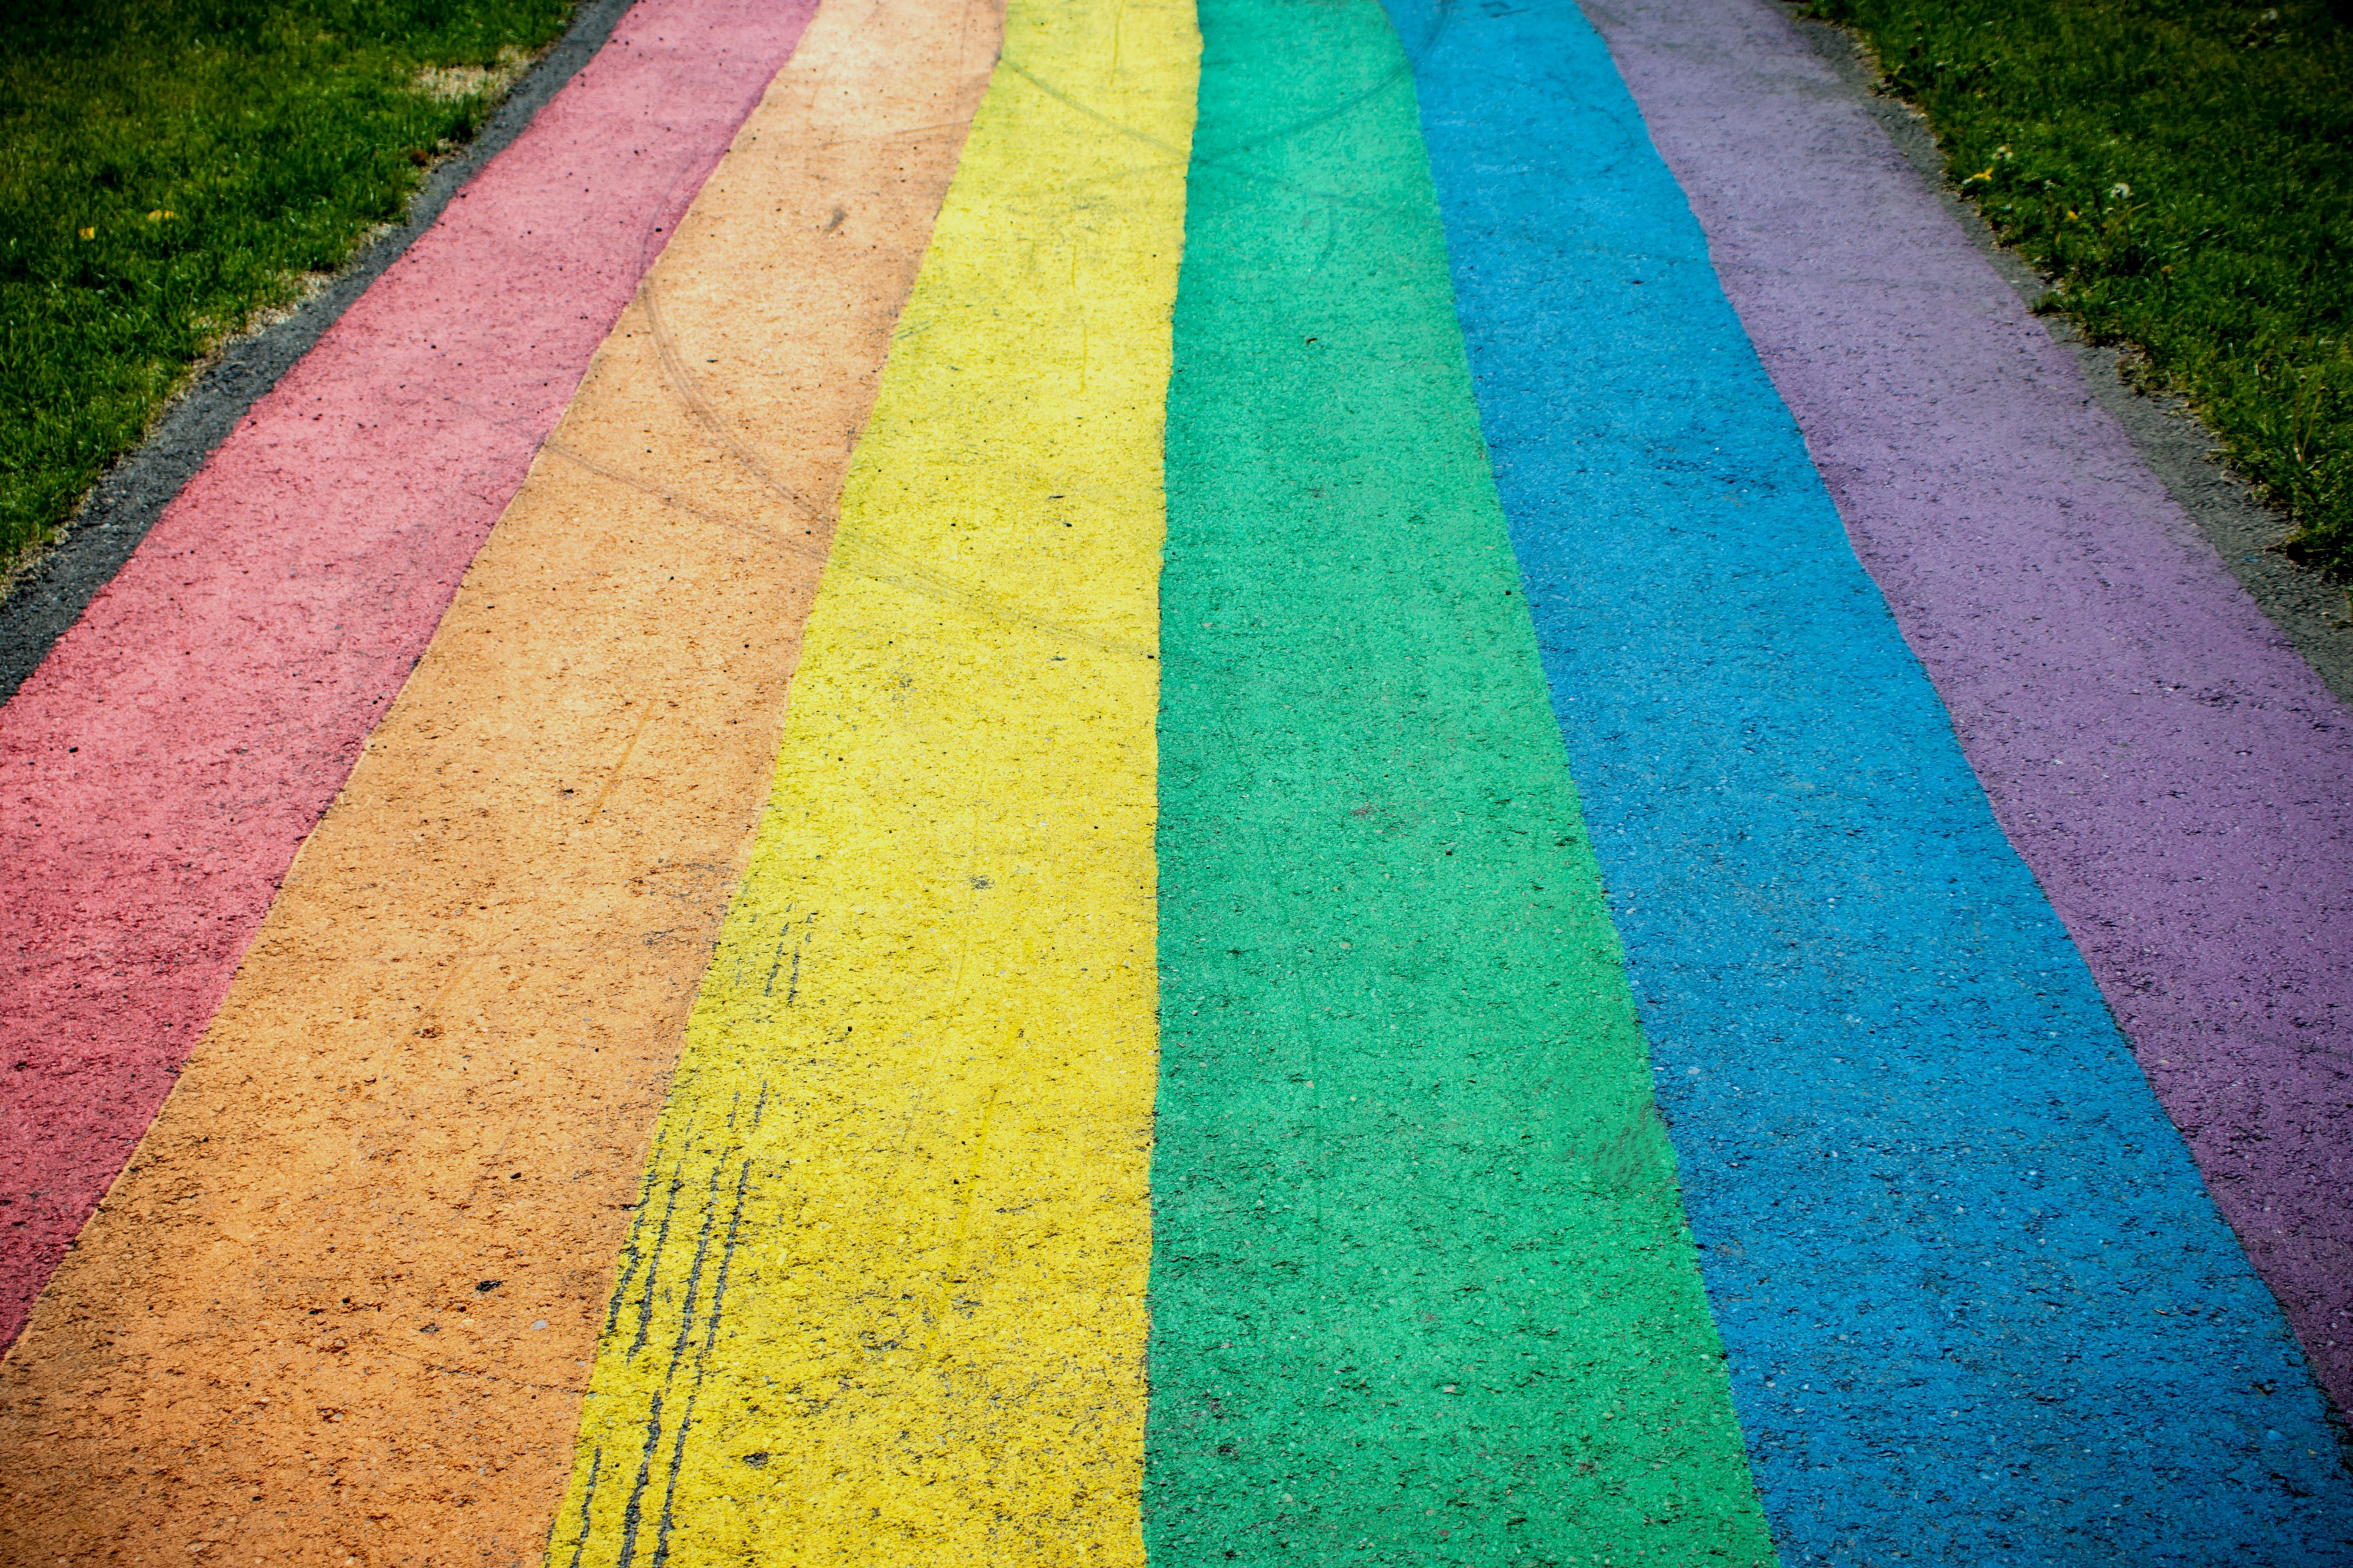 A sidewalk filled with rainbow stripes in chalk.